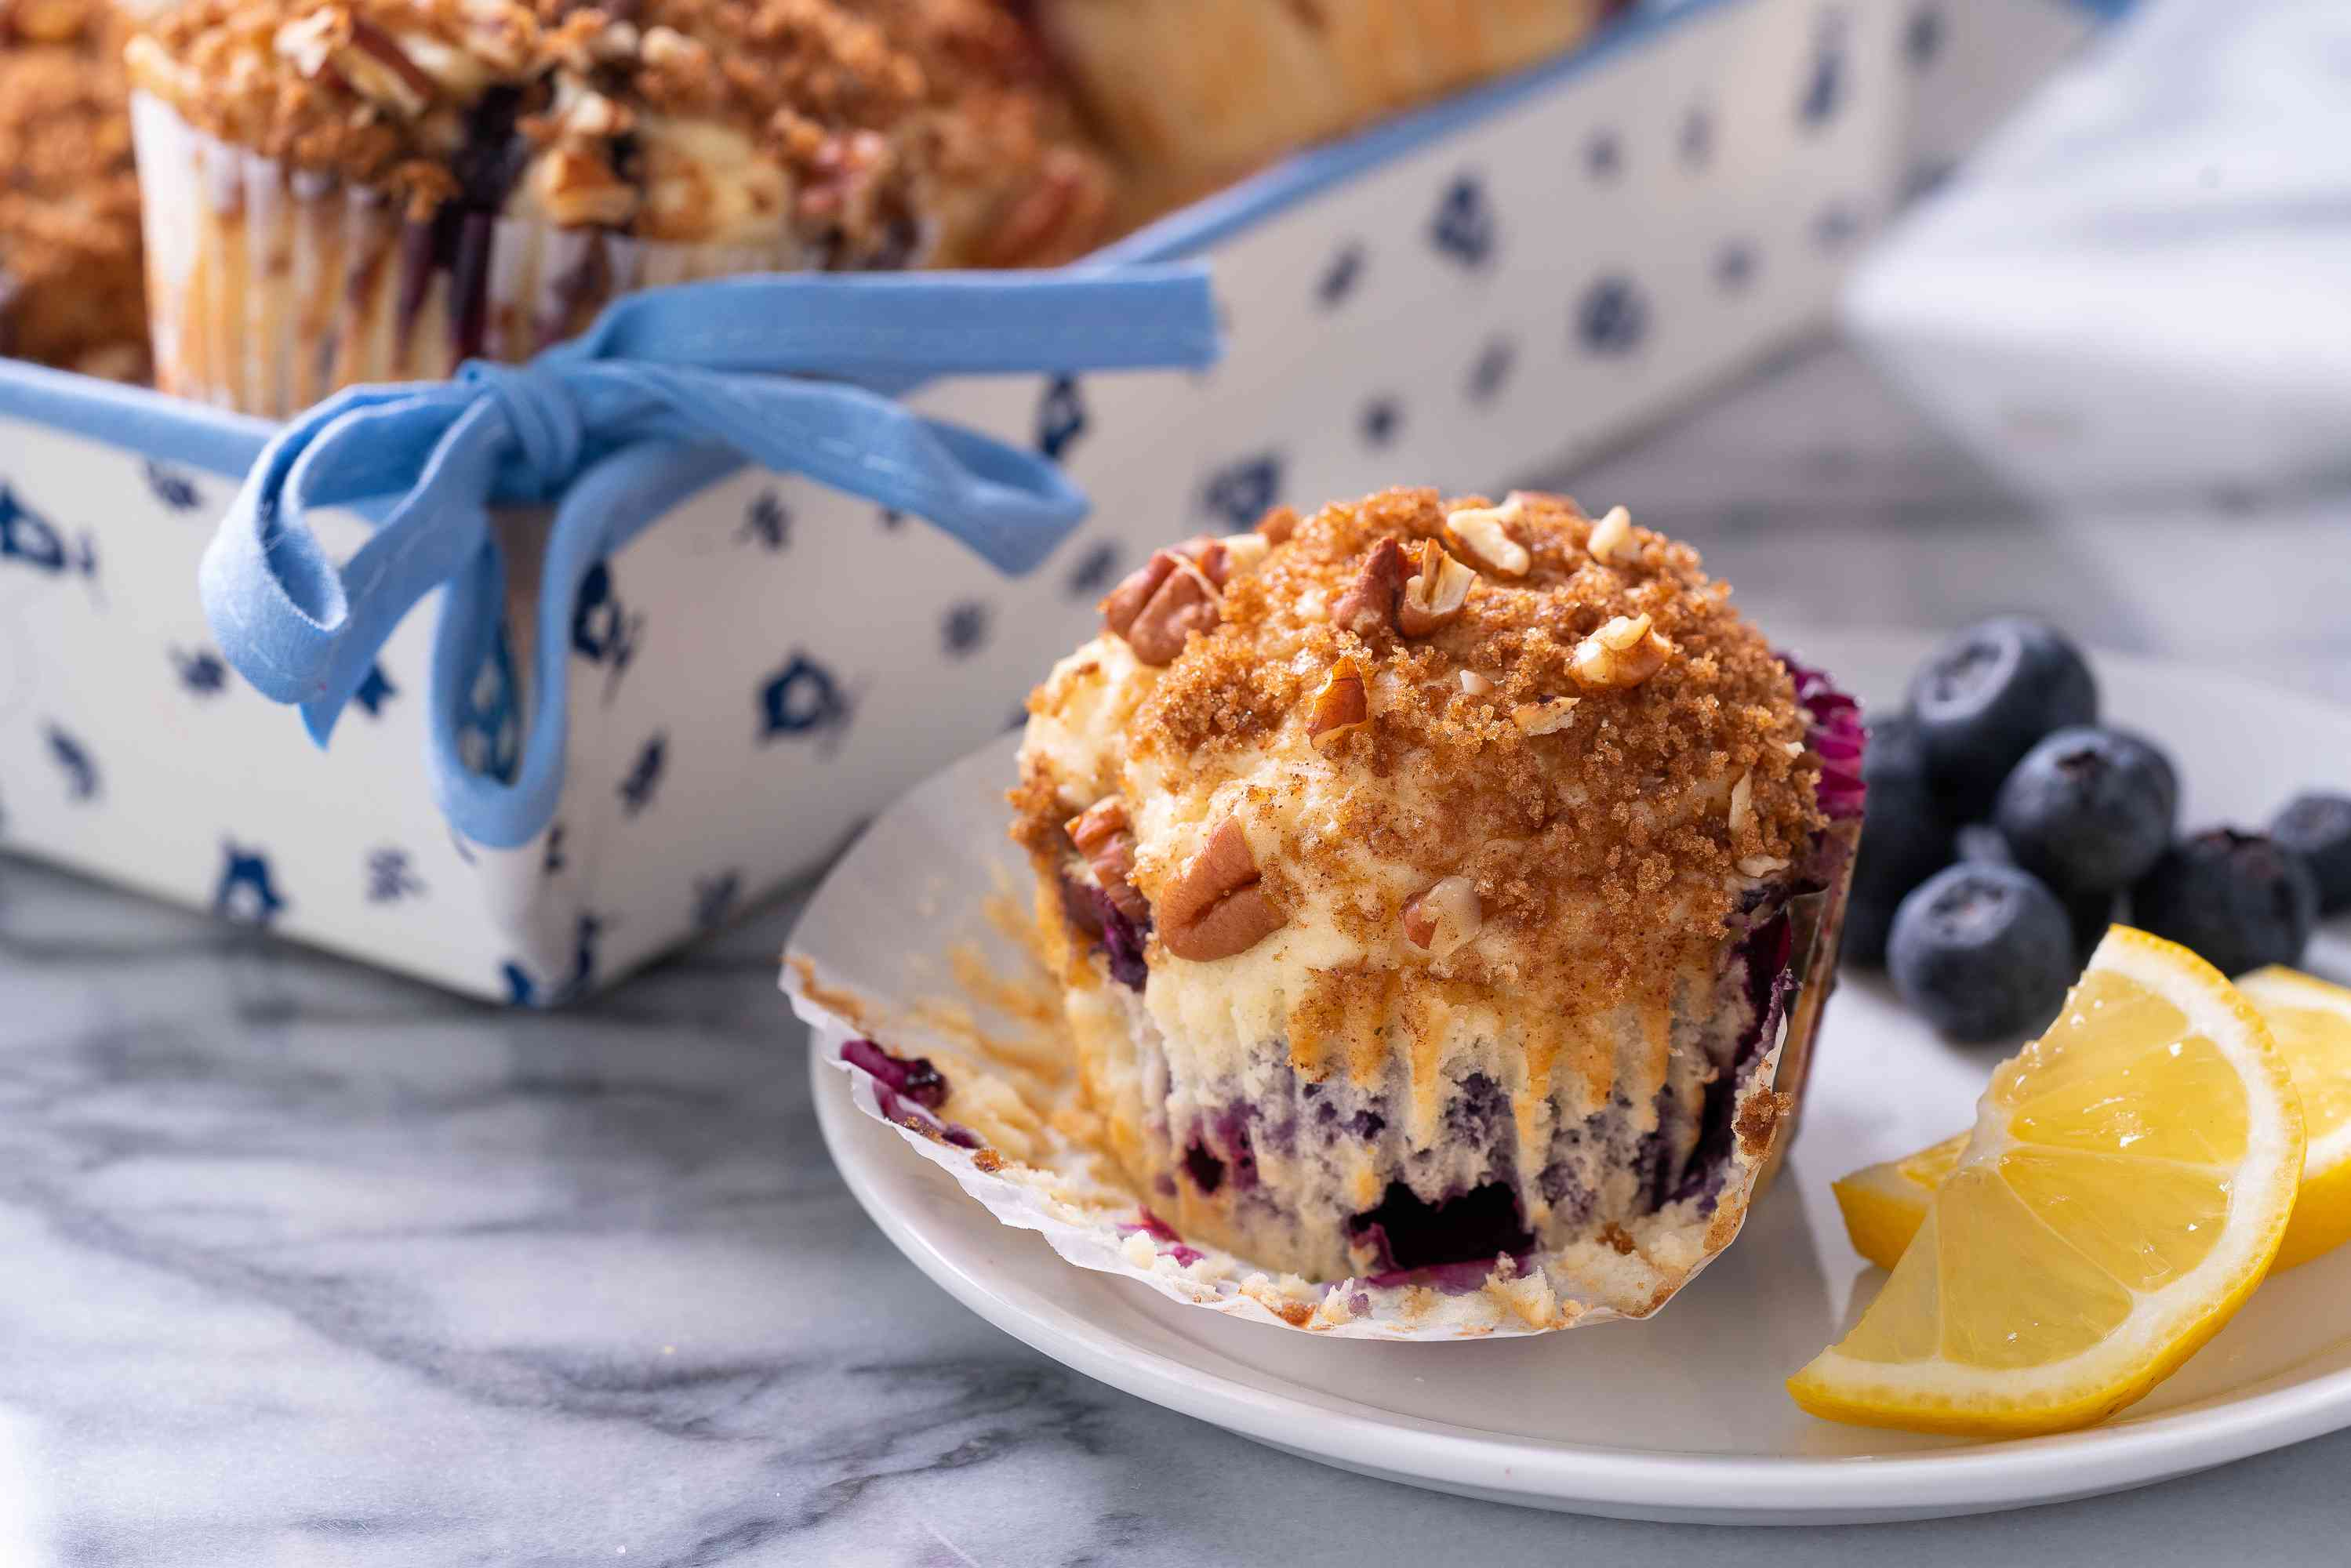 Lemon blueberry muffins on a serving plate